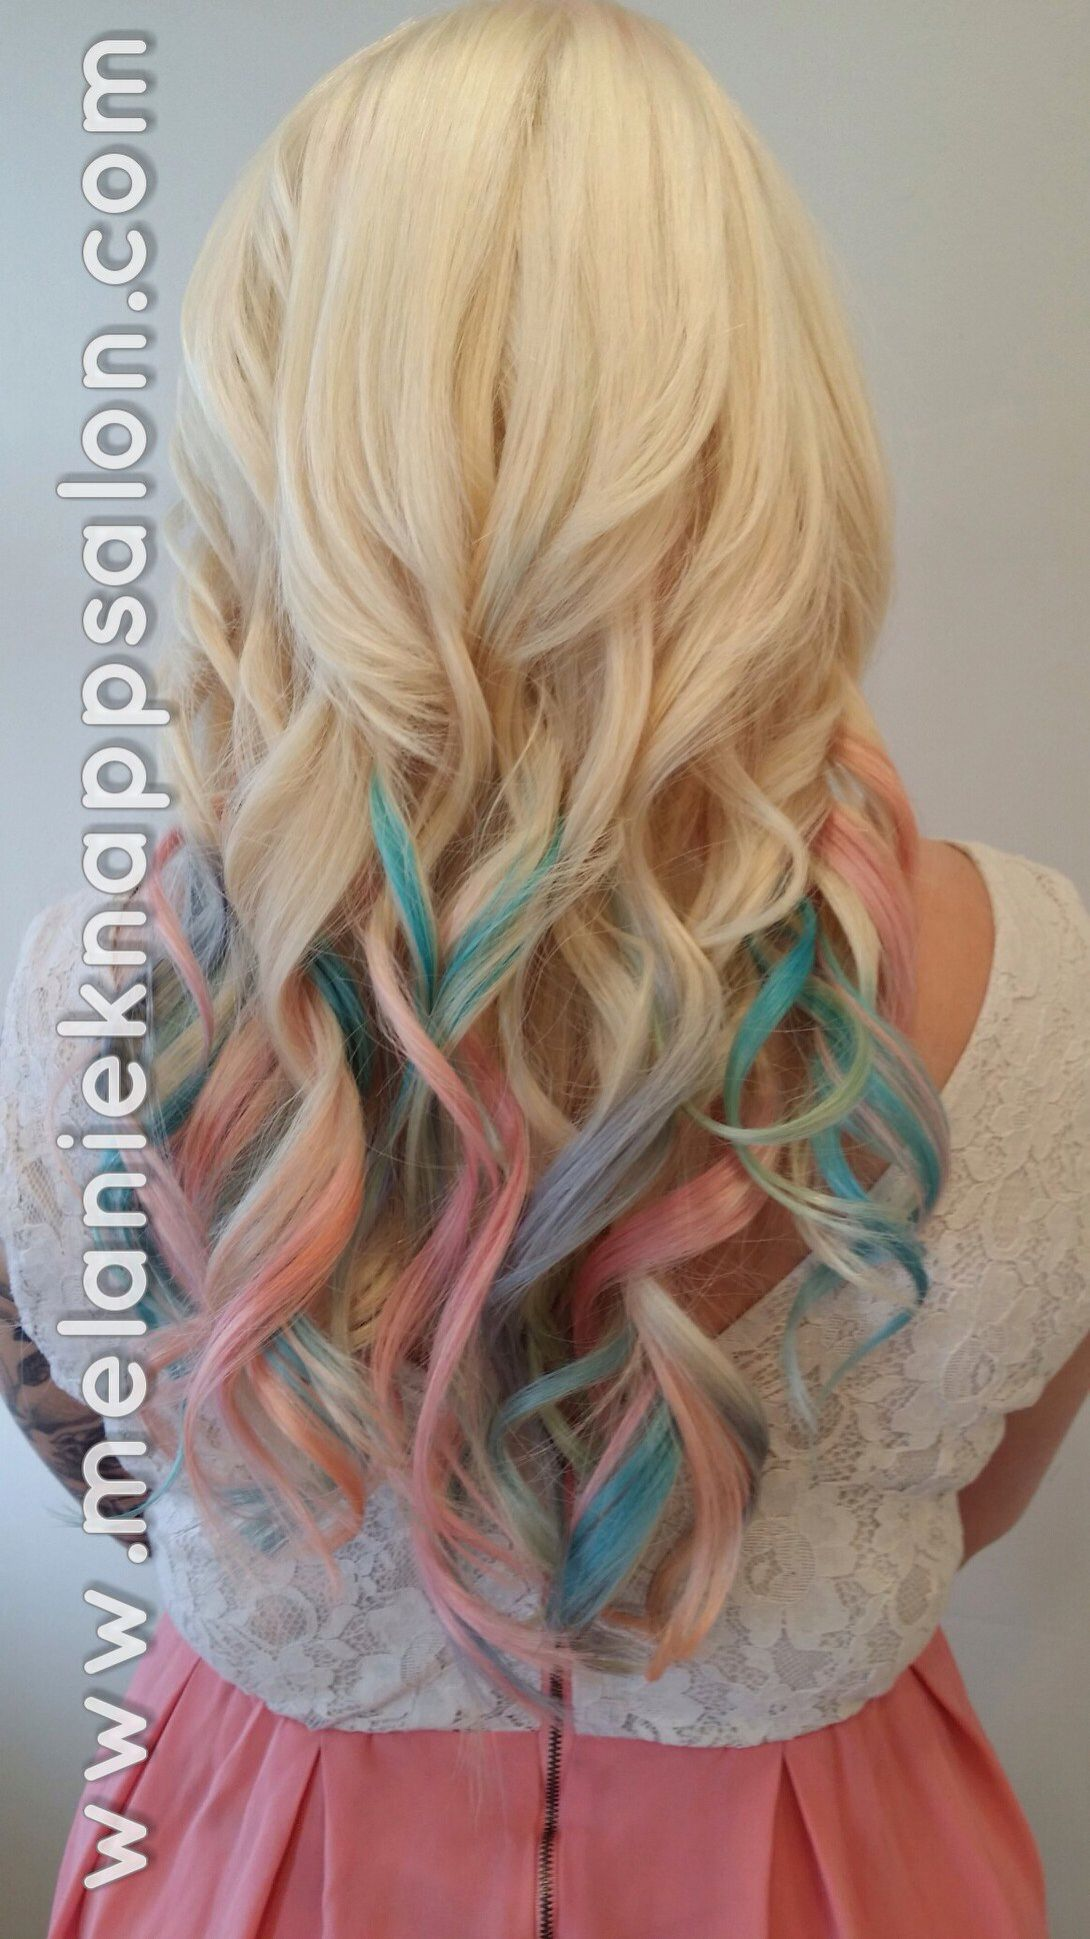 Pastel Ombre Hair With Babe Tape In Extensions To Take From Short To